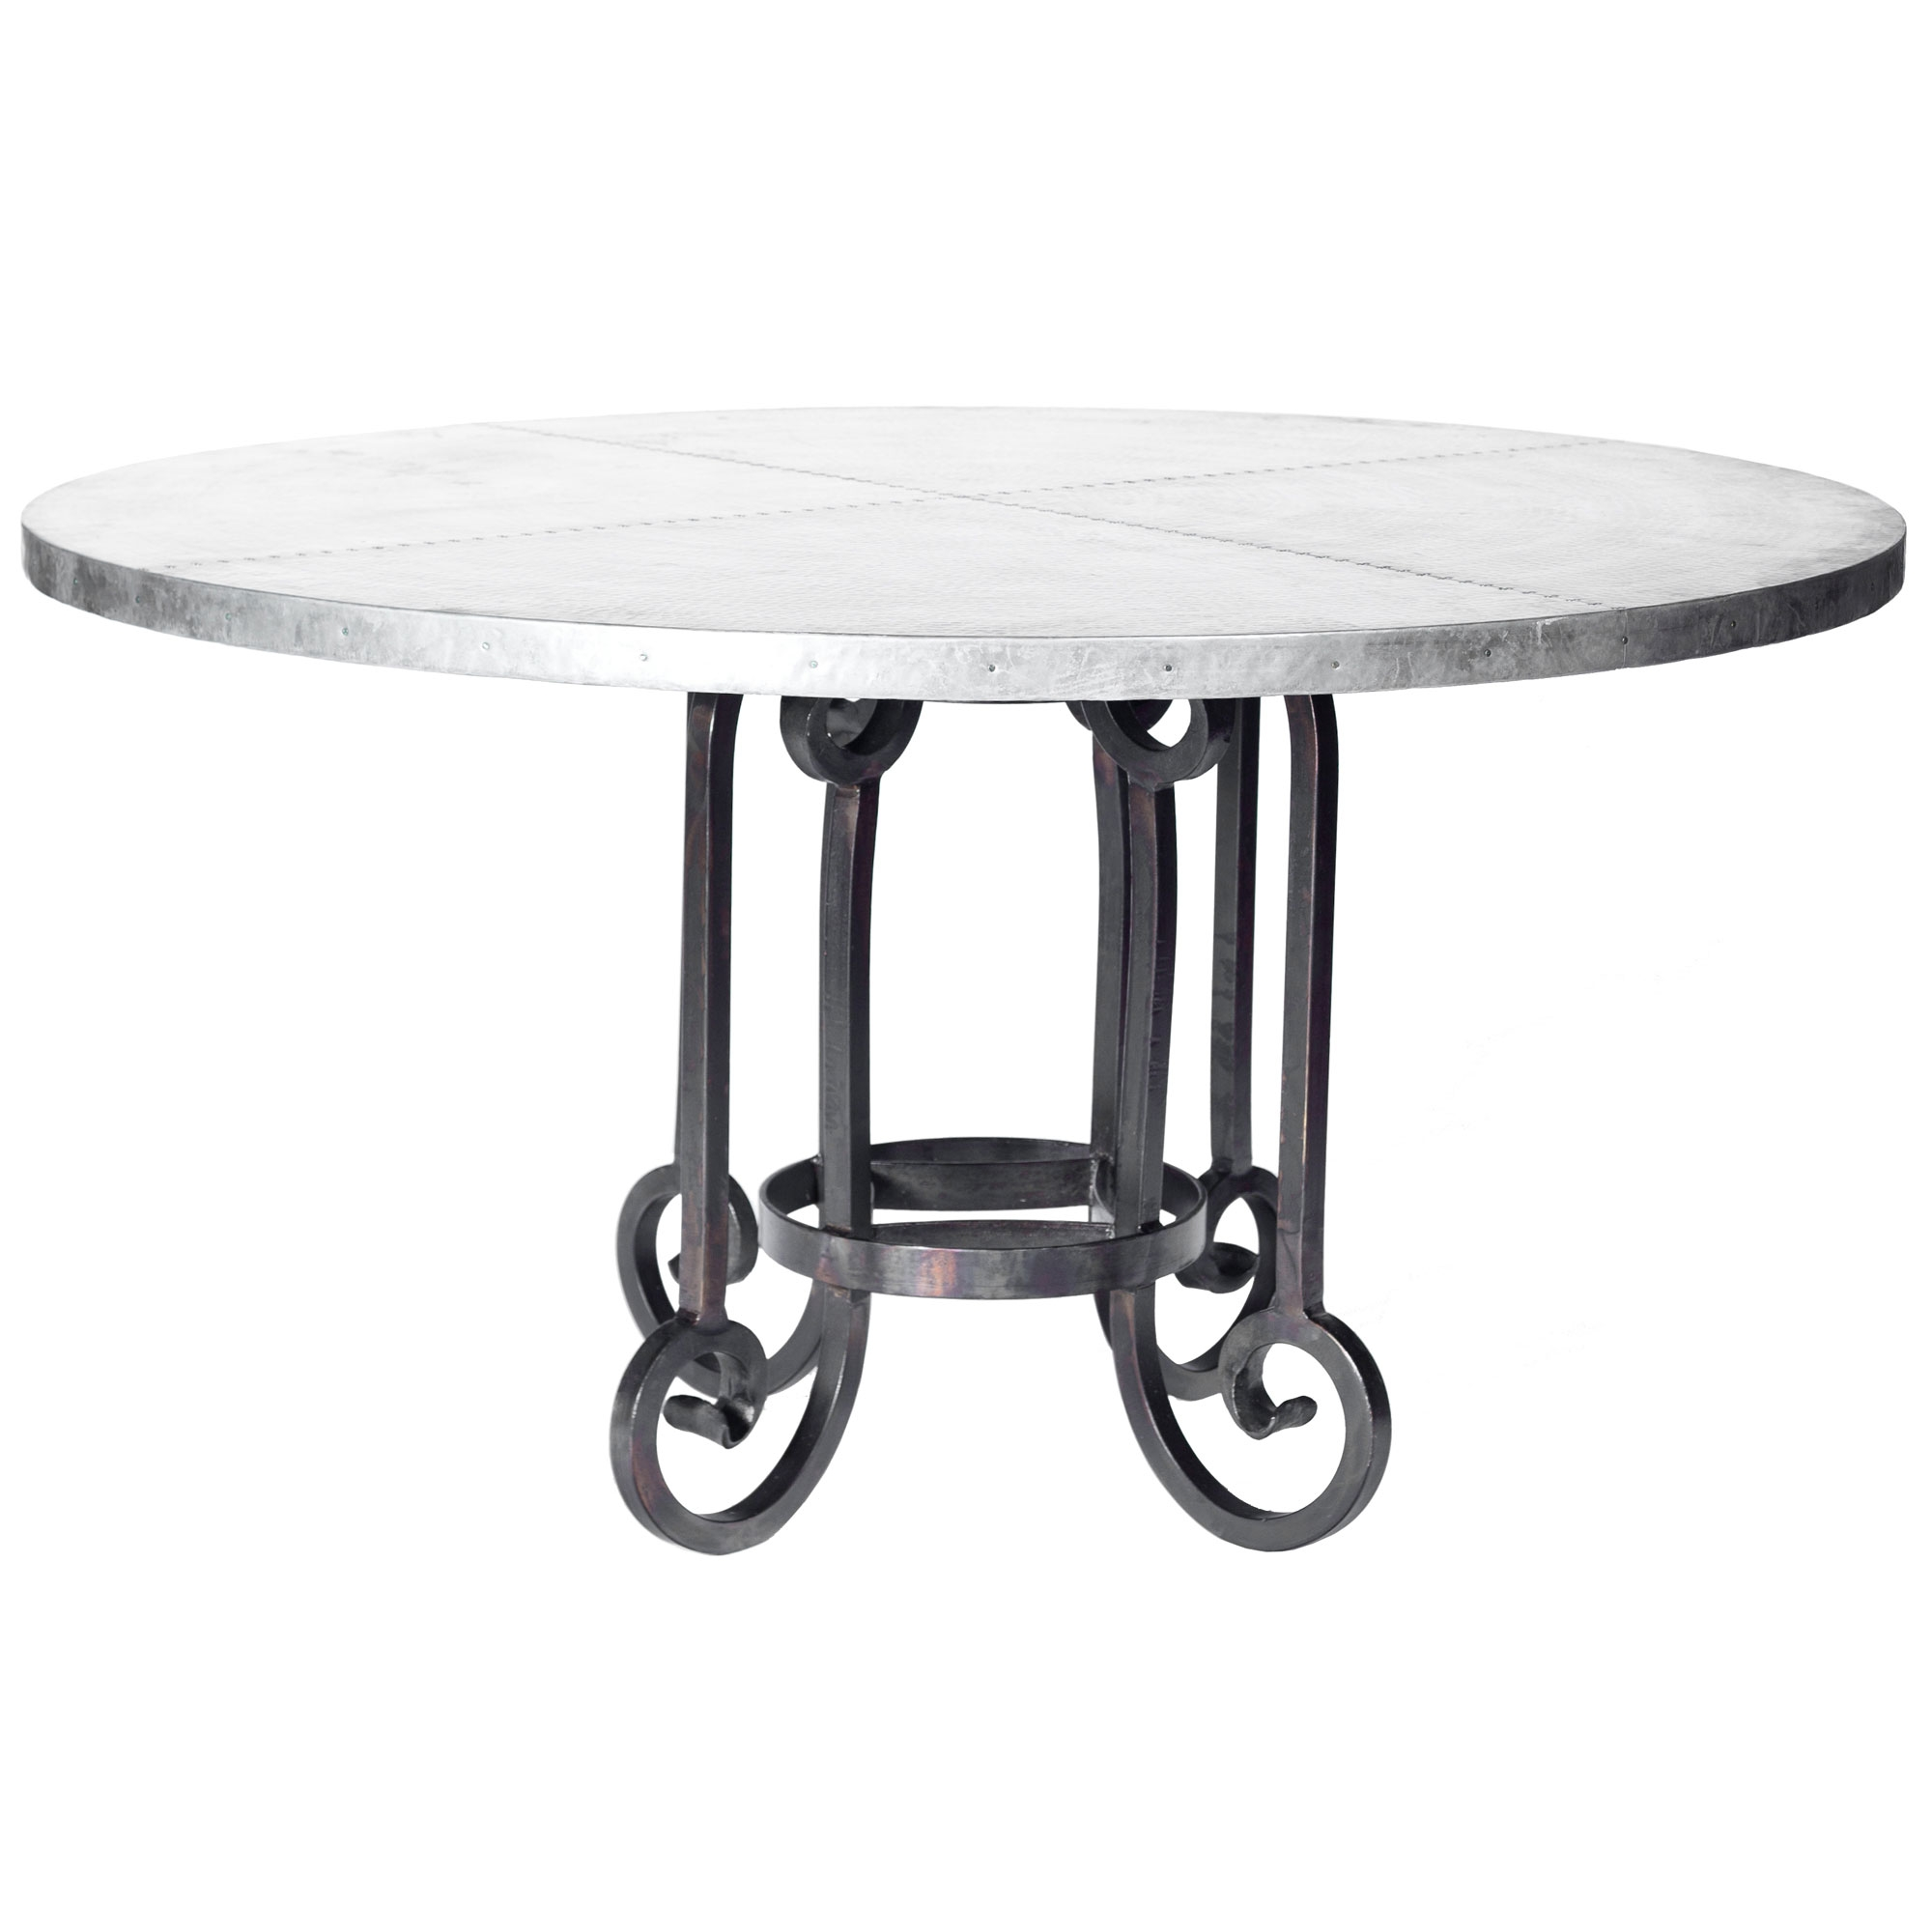 54 Round Dining Tables - Starrkingschool